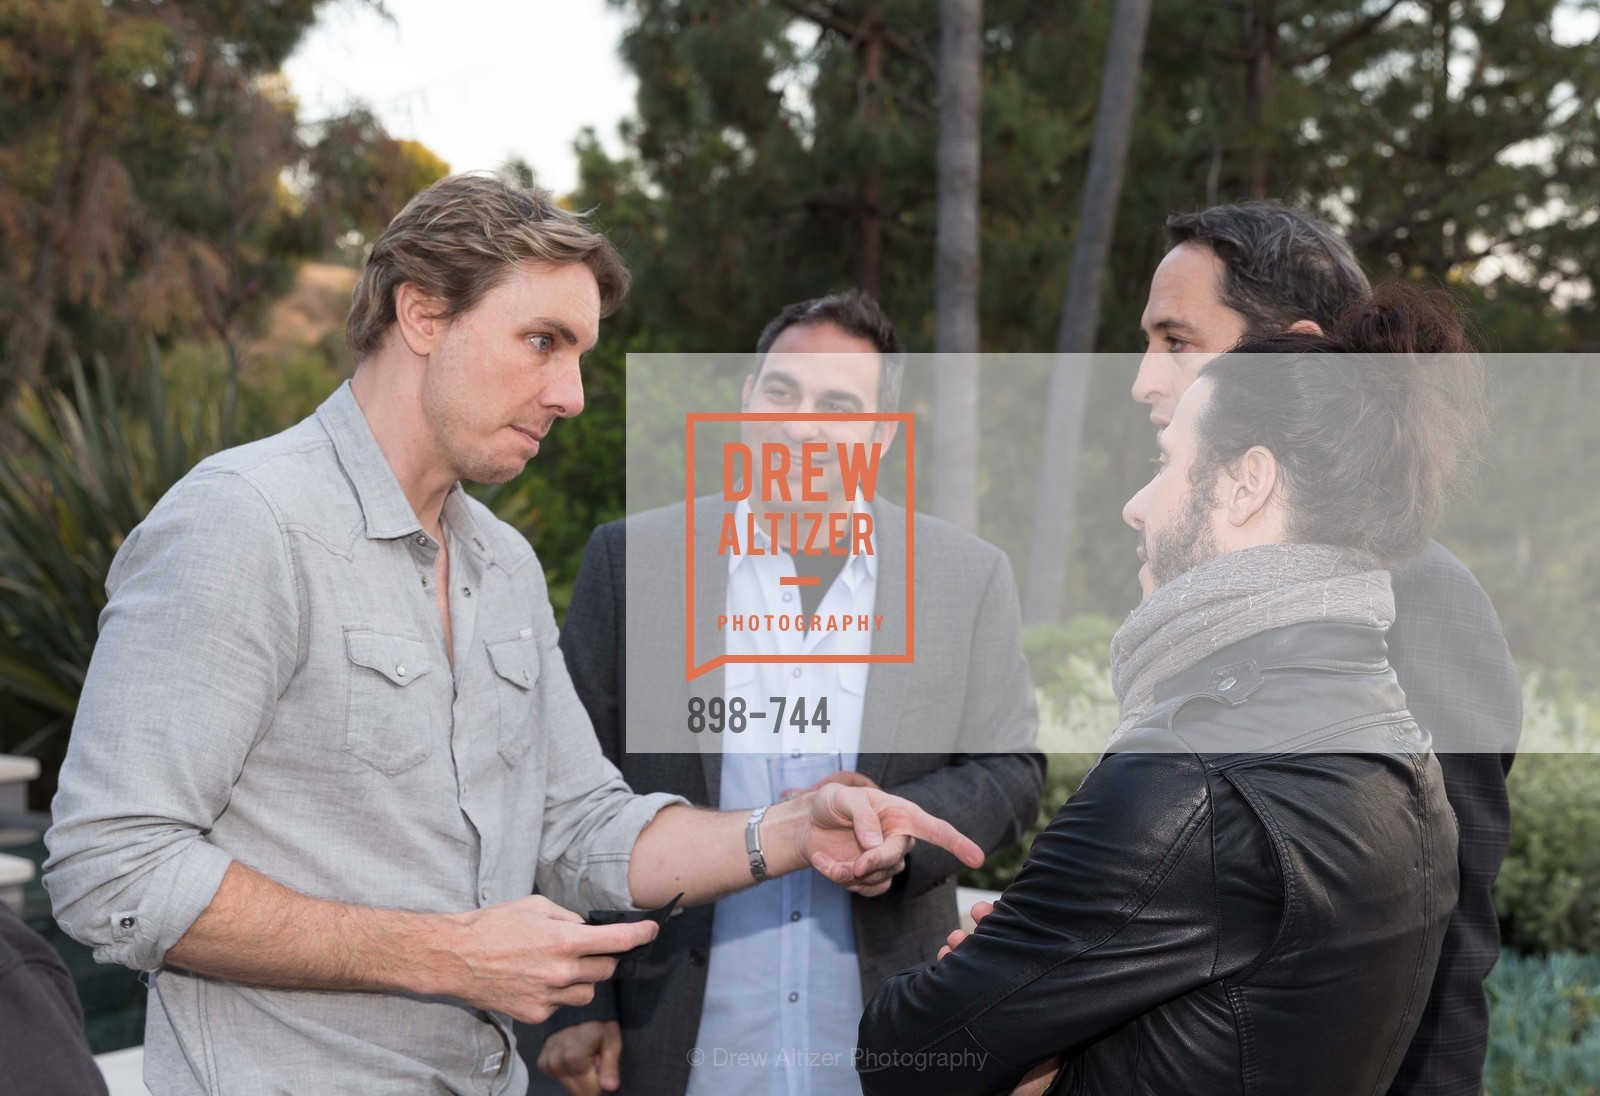 Dax Shepard, Adam Lilling, Greg Silverman, Andrew Panay, Celebration of Launch of SHYP in Los Angeles, US, May 21st, 2015,Drew Altizer, Drew Altizer Photography, full-service agency, private events, San Francisco photographer, photographer california